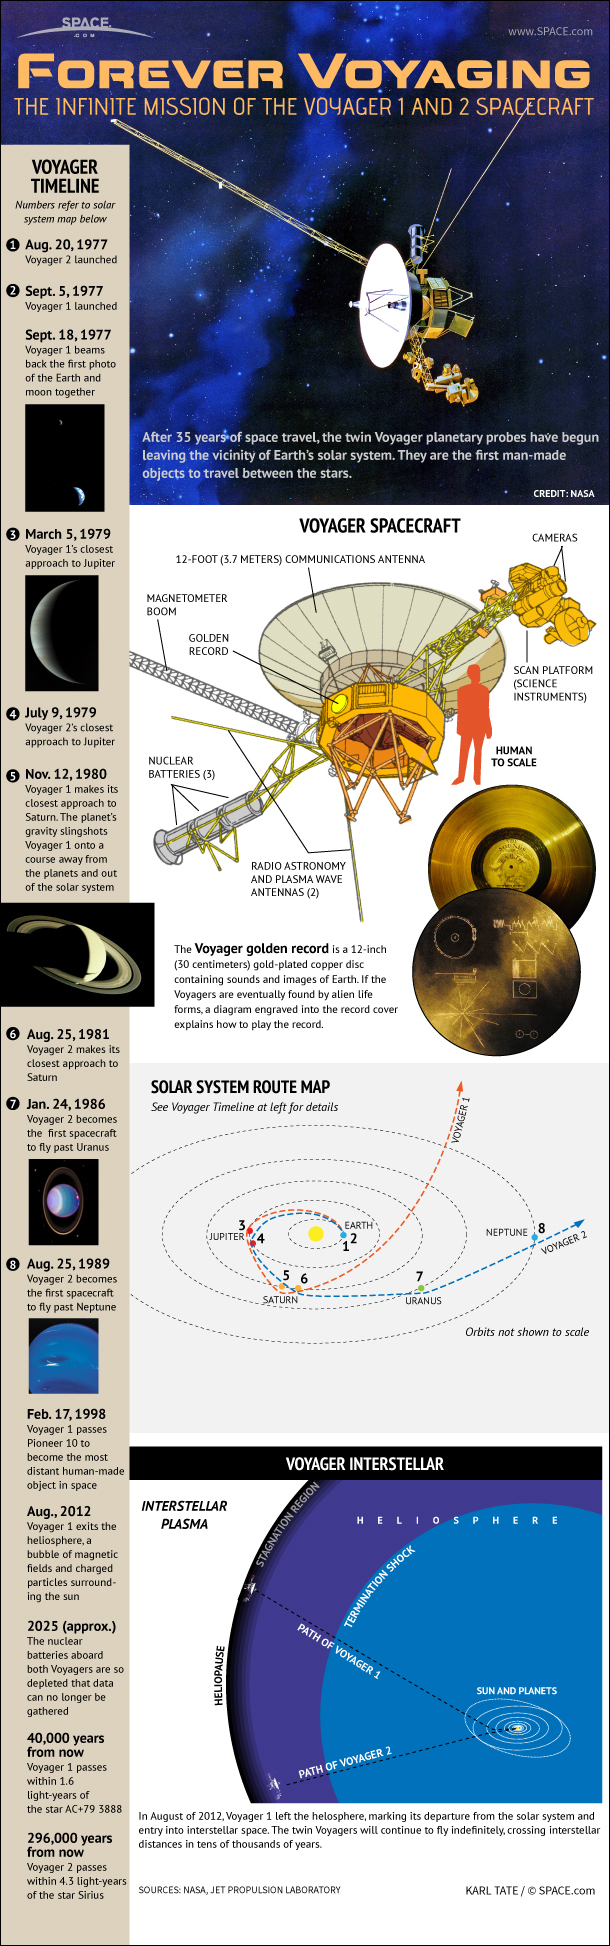 Infographic: unmanned Voyager 1 and 2 probes visited the outer planets of the solar system and are approaching the edge of our solar system.